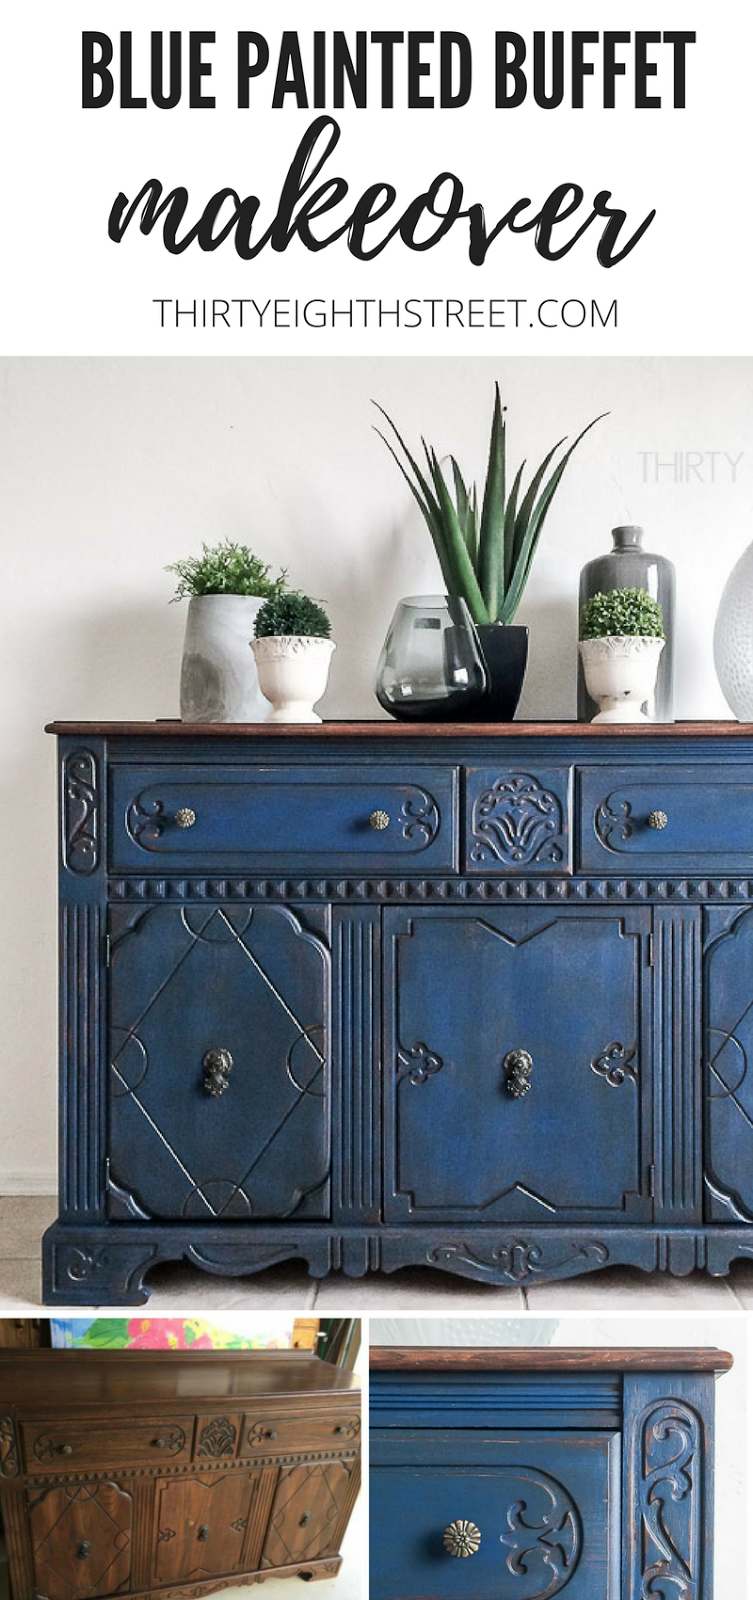 Painted buffet table furniture - Blue Furniture How To Paint Furniture Distressing Furniture Blue Furniture Ideas Furniture